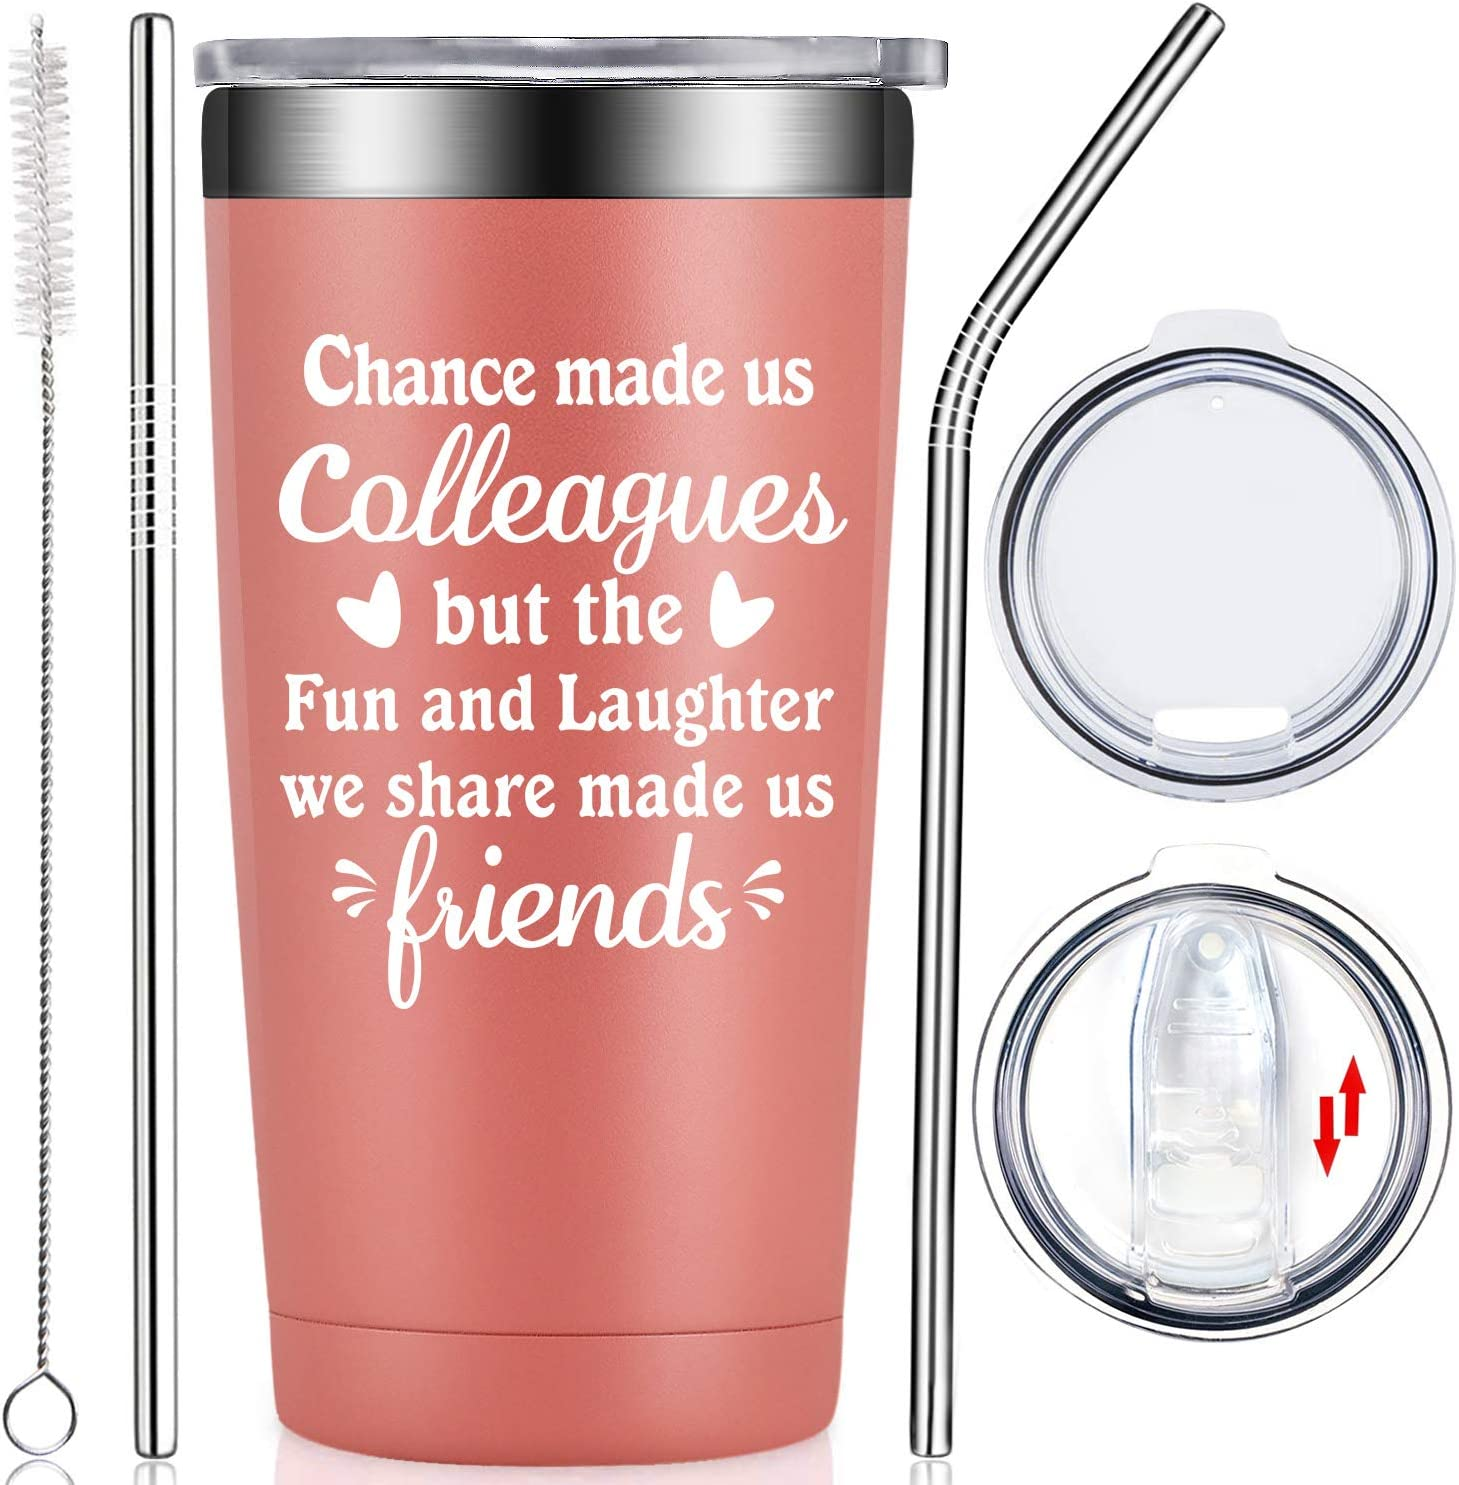 Fufendio Coworker Gifts for Women - Coworker Leaving, Going Away, Goodbye, Farewell, New Job, Friendship, Christmas, Birthday Present for Colleague Boss Employees Co-worker Friends Wine Tumbler Cup